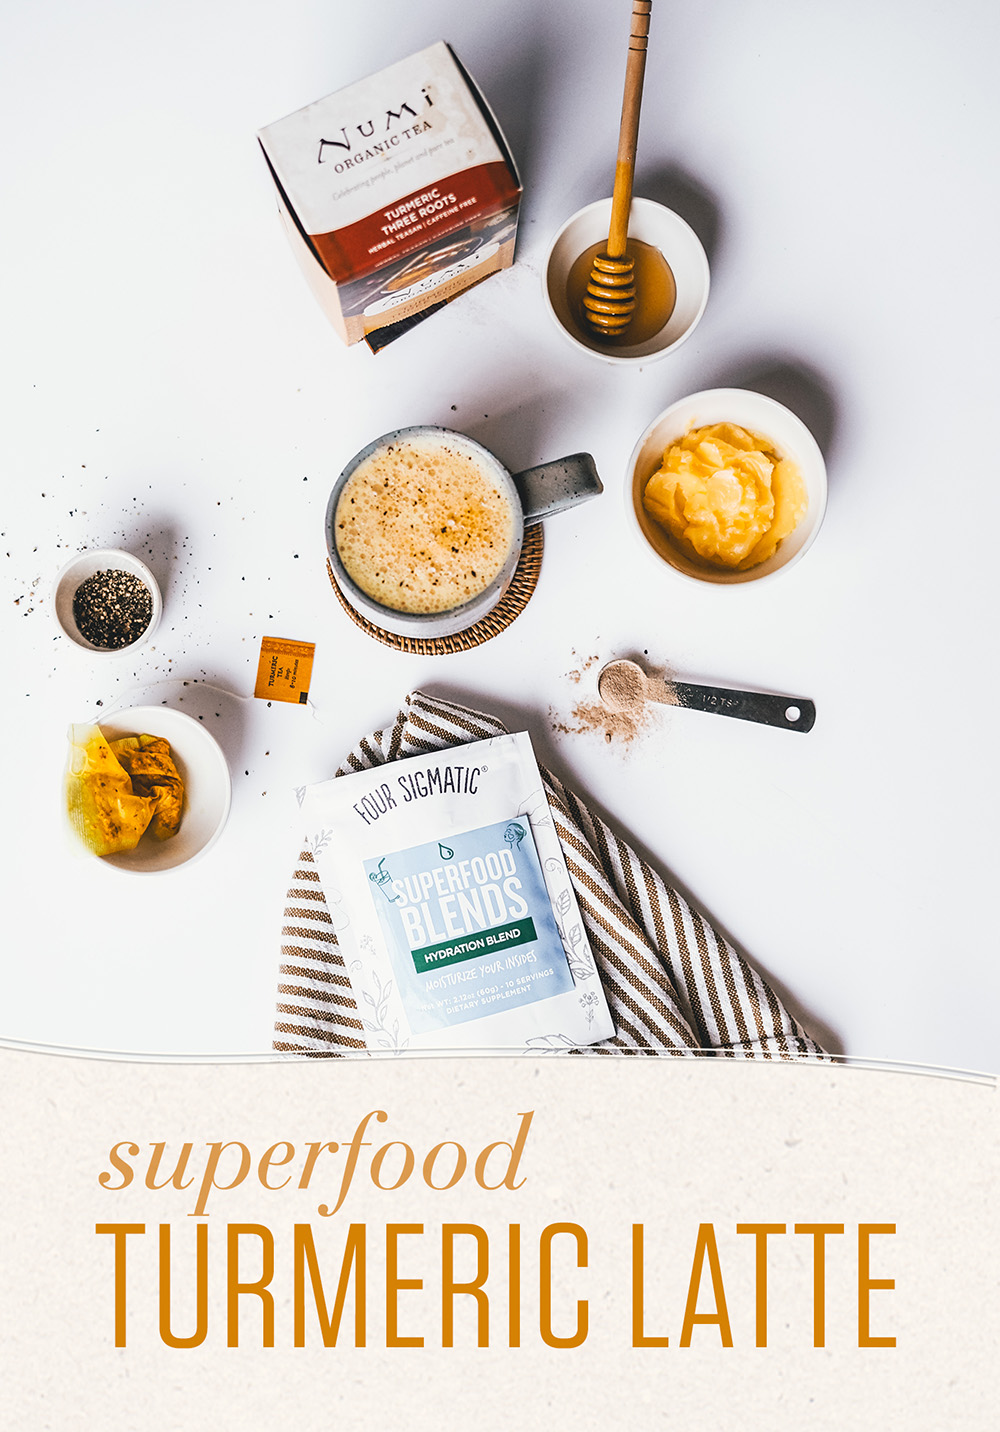 Turmeric Latte with Hydrating Superfoods